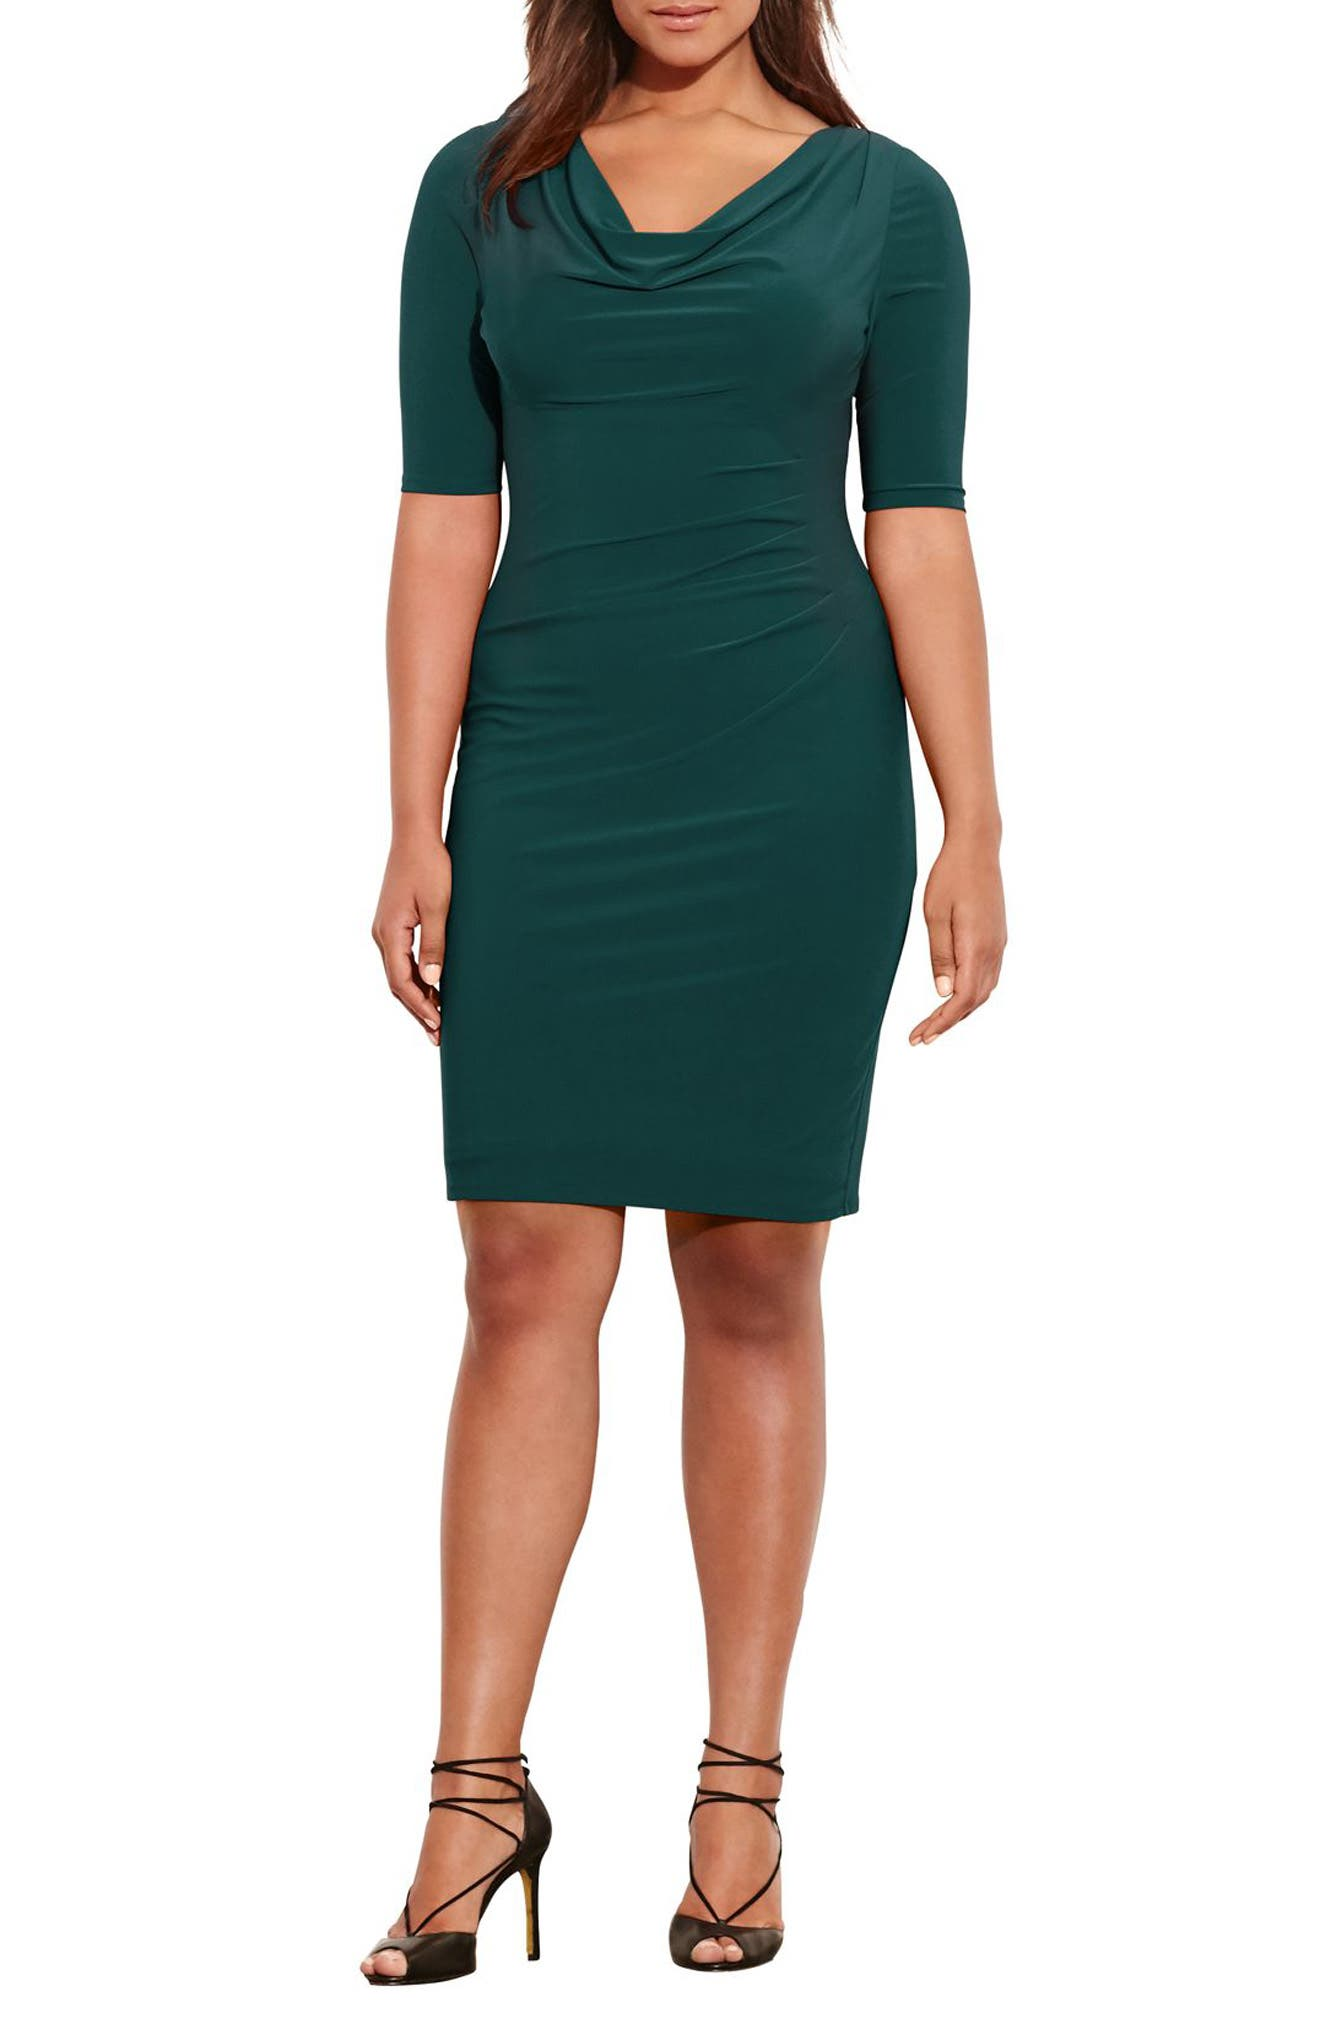 Carleton Cowl Neck Jersey Dress,                         Main,                         color, 300